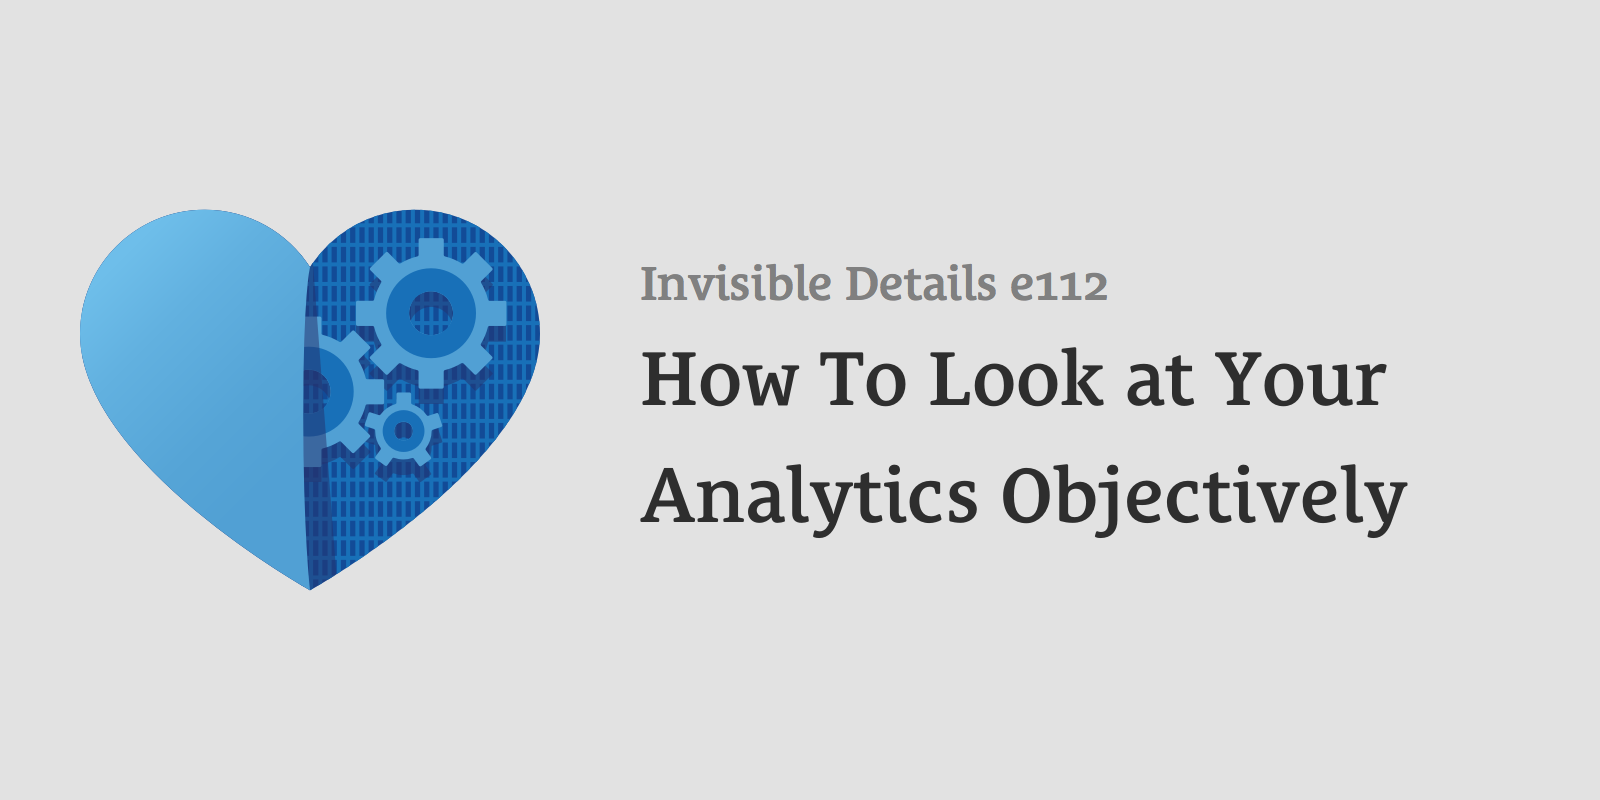 How To Look at Your Analytics Objectively